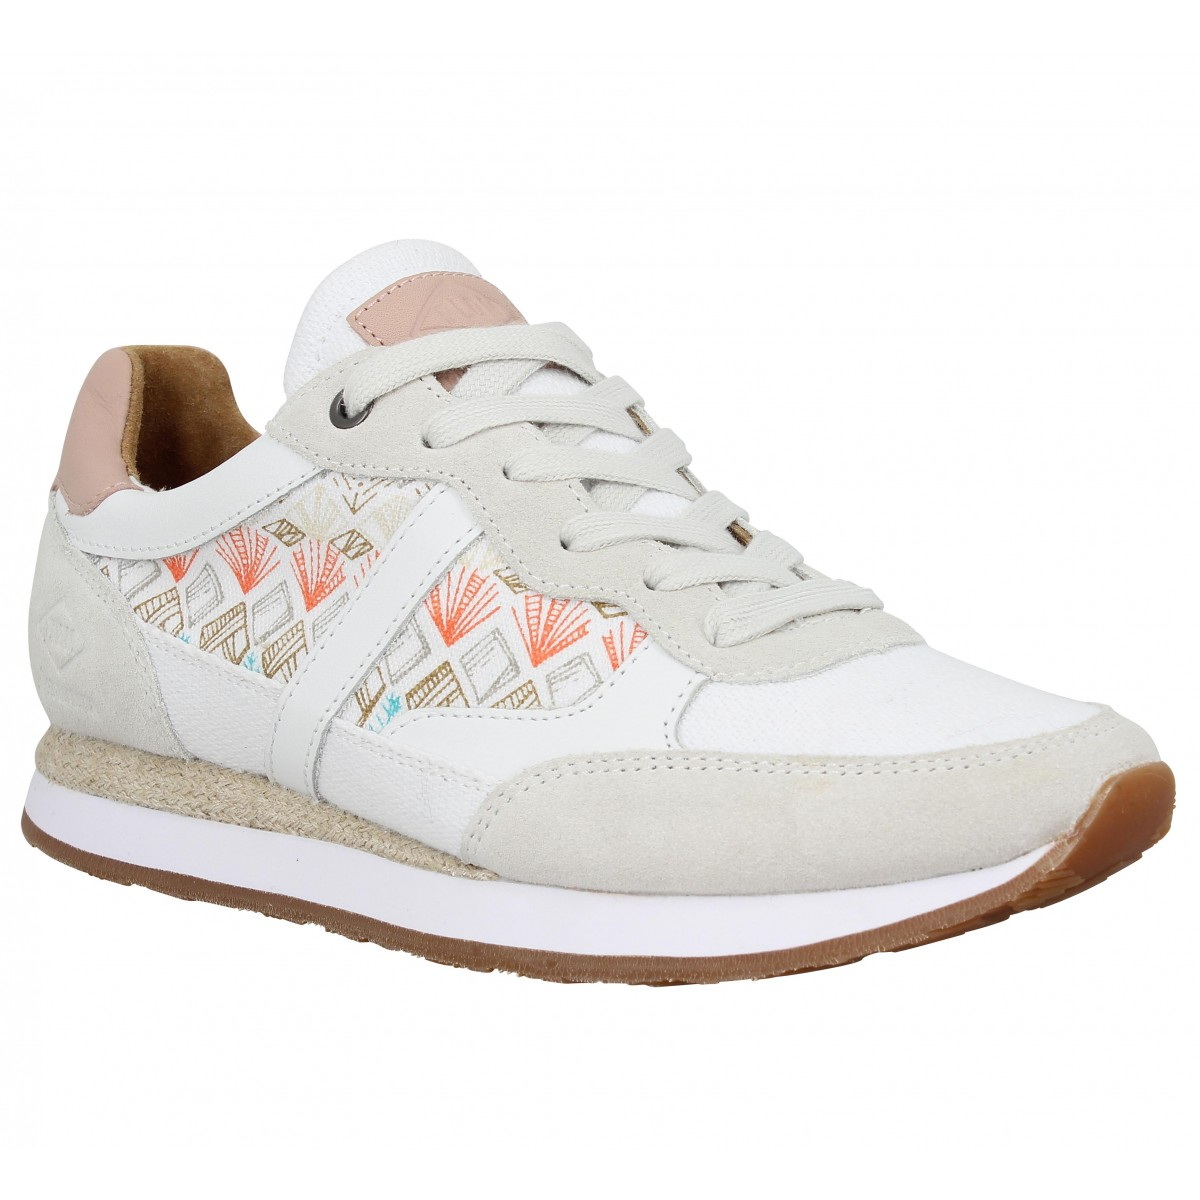 Baskets PLDM by PALLADIUM Segundo Mix Femme Blanc